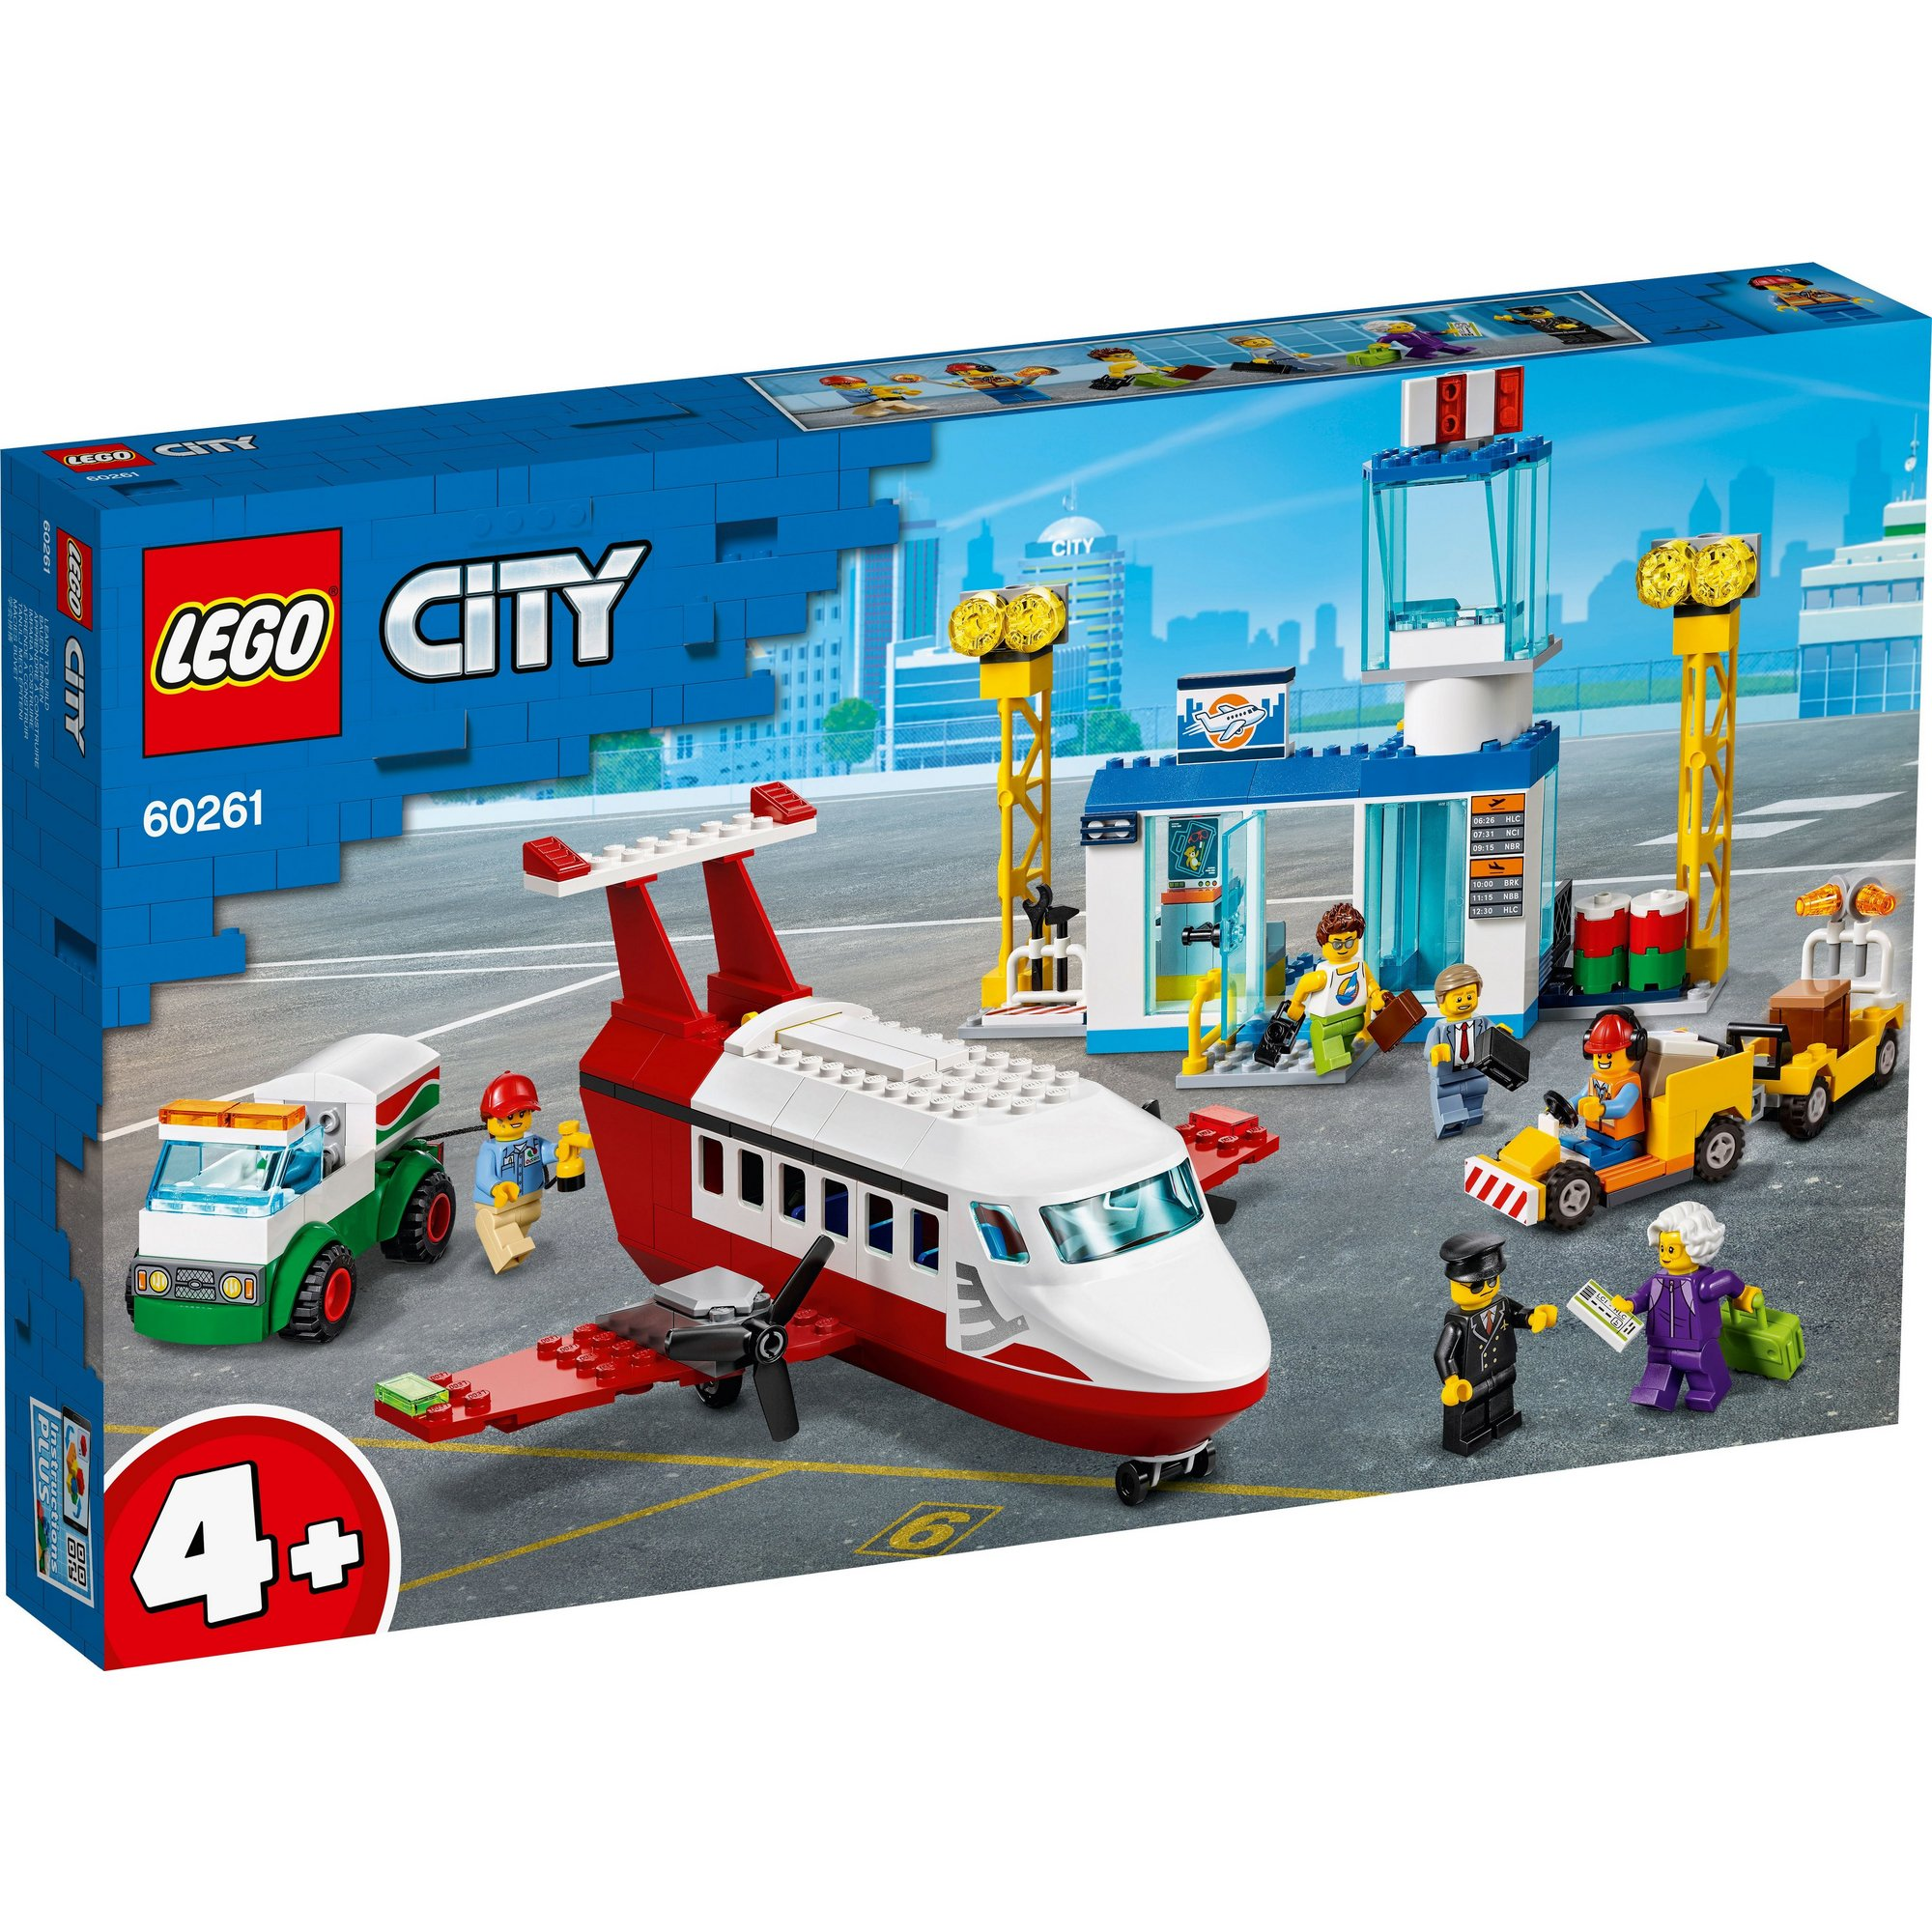 Image of LEGO City Airport Central Airport